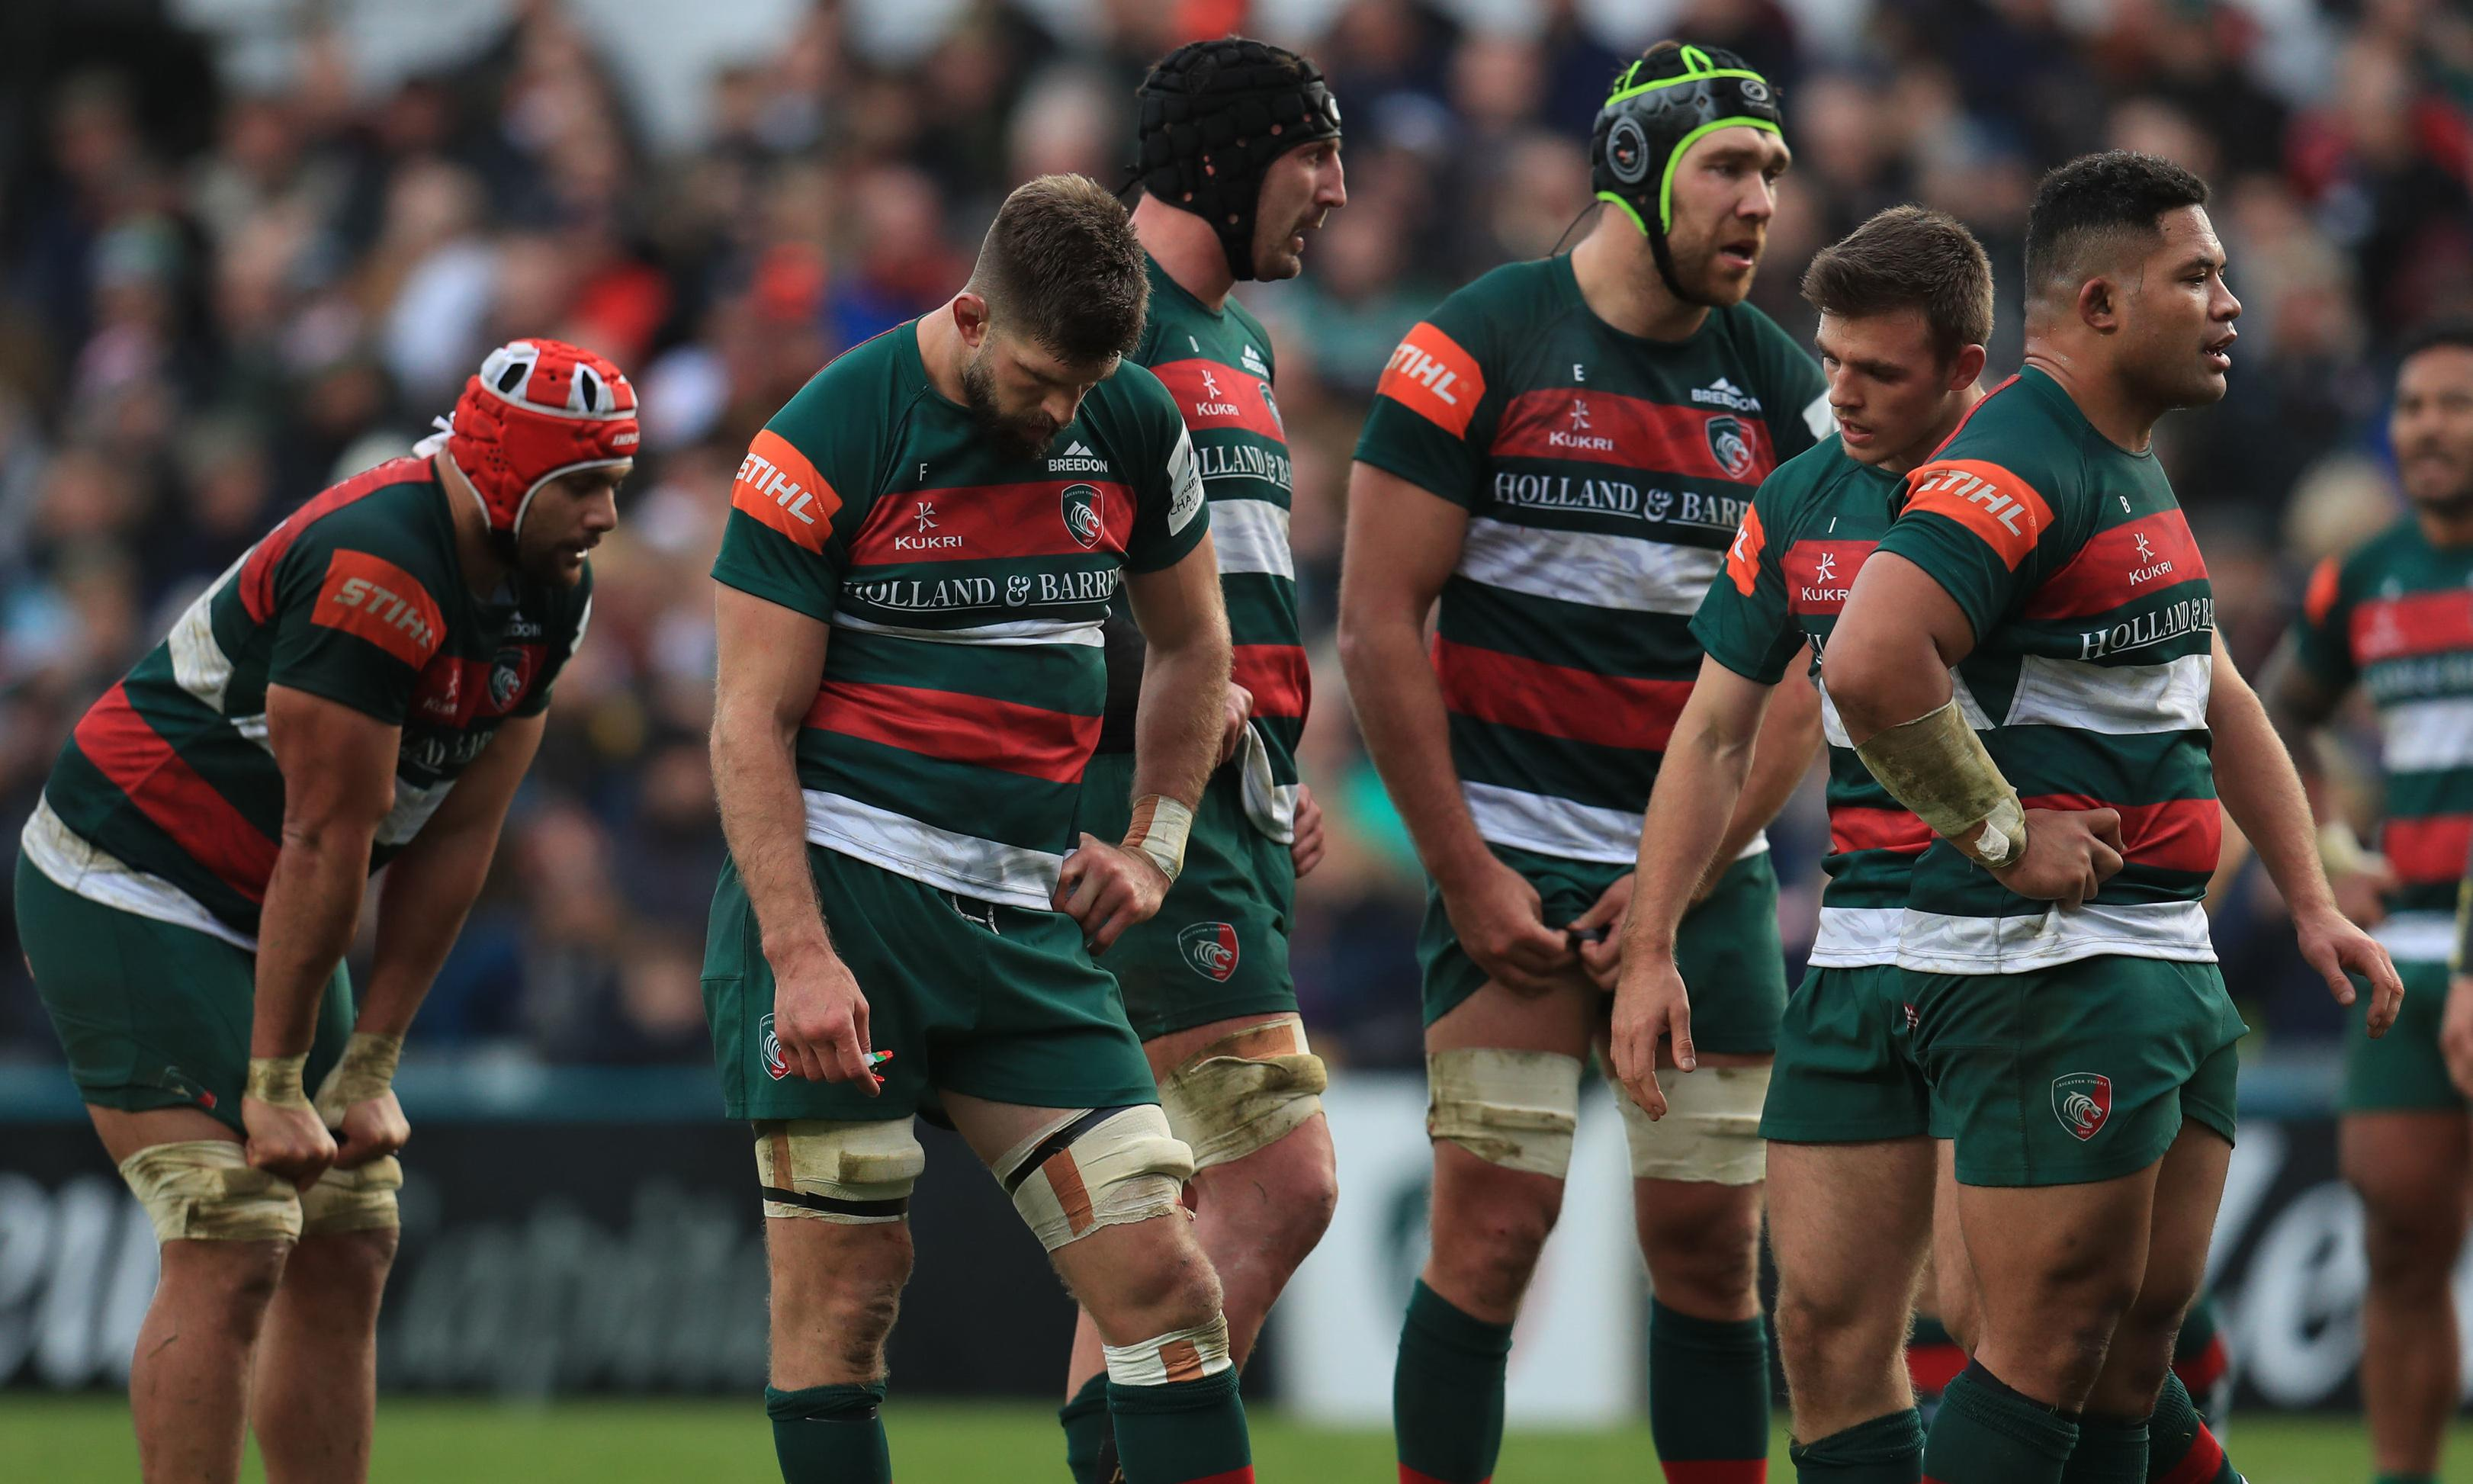 Leicester Tigers put up for sale in wake of CVC's Premiership investment